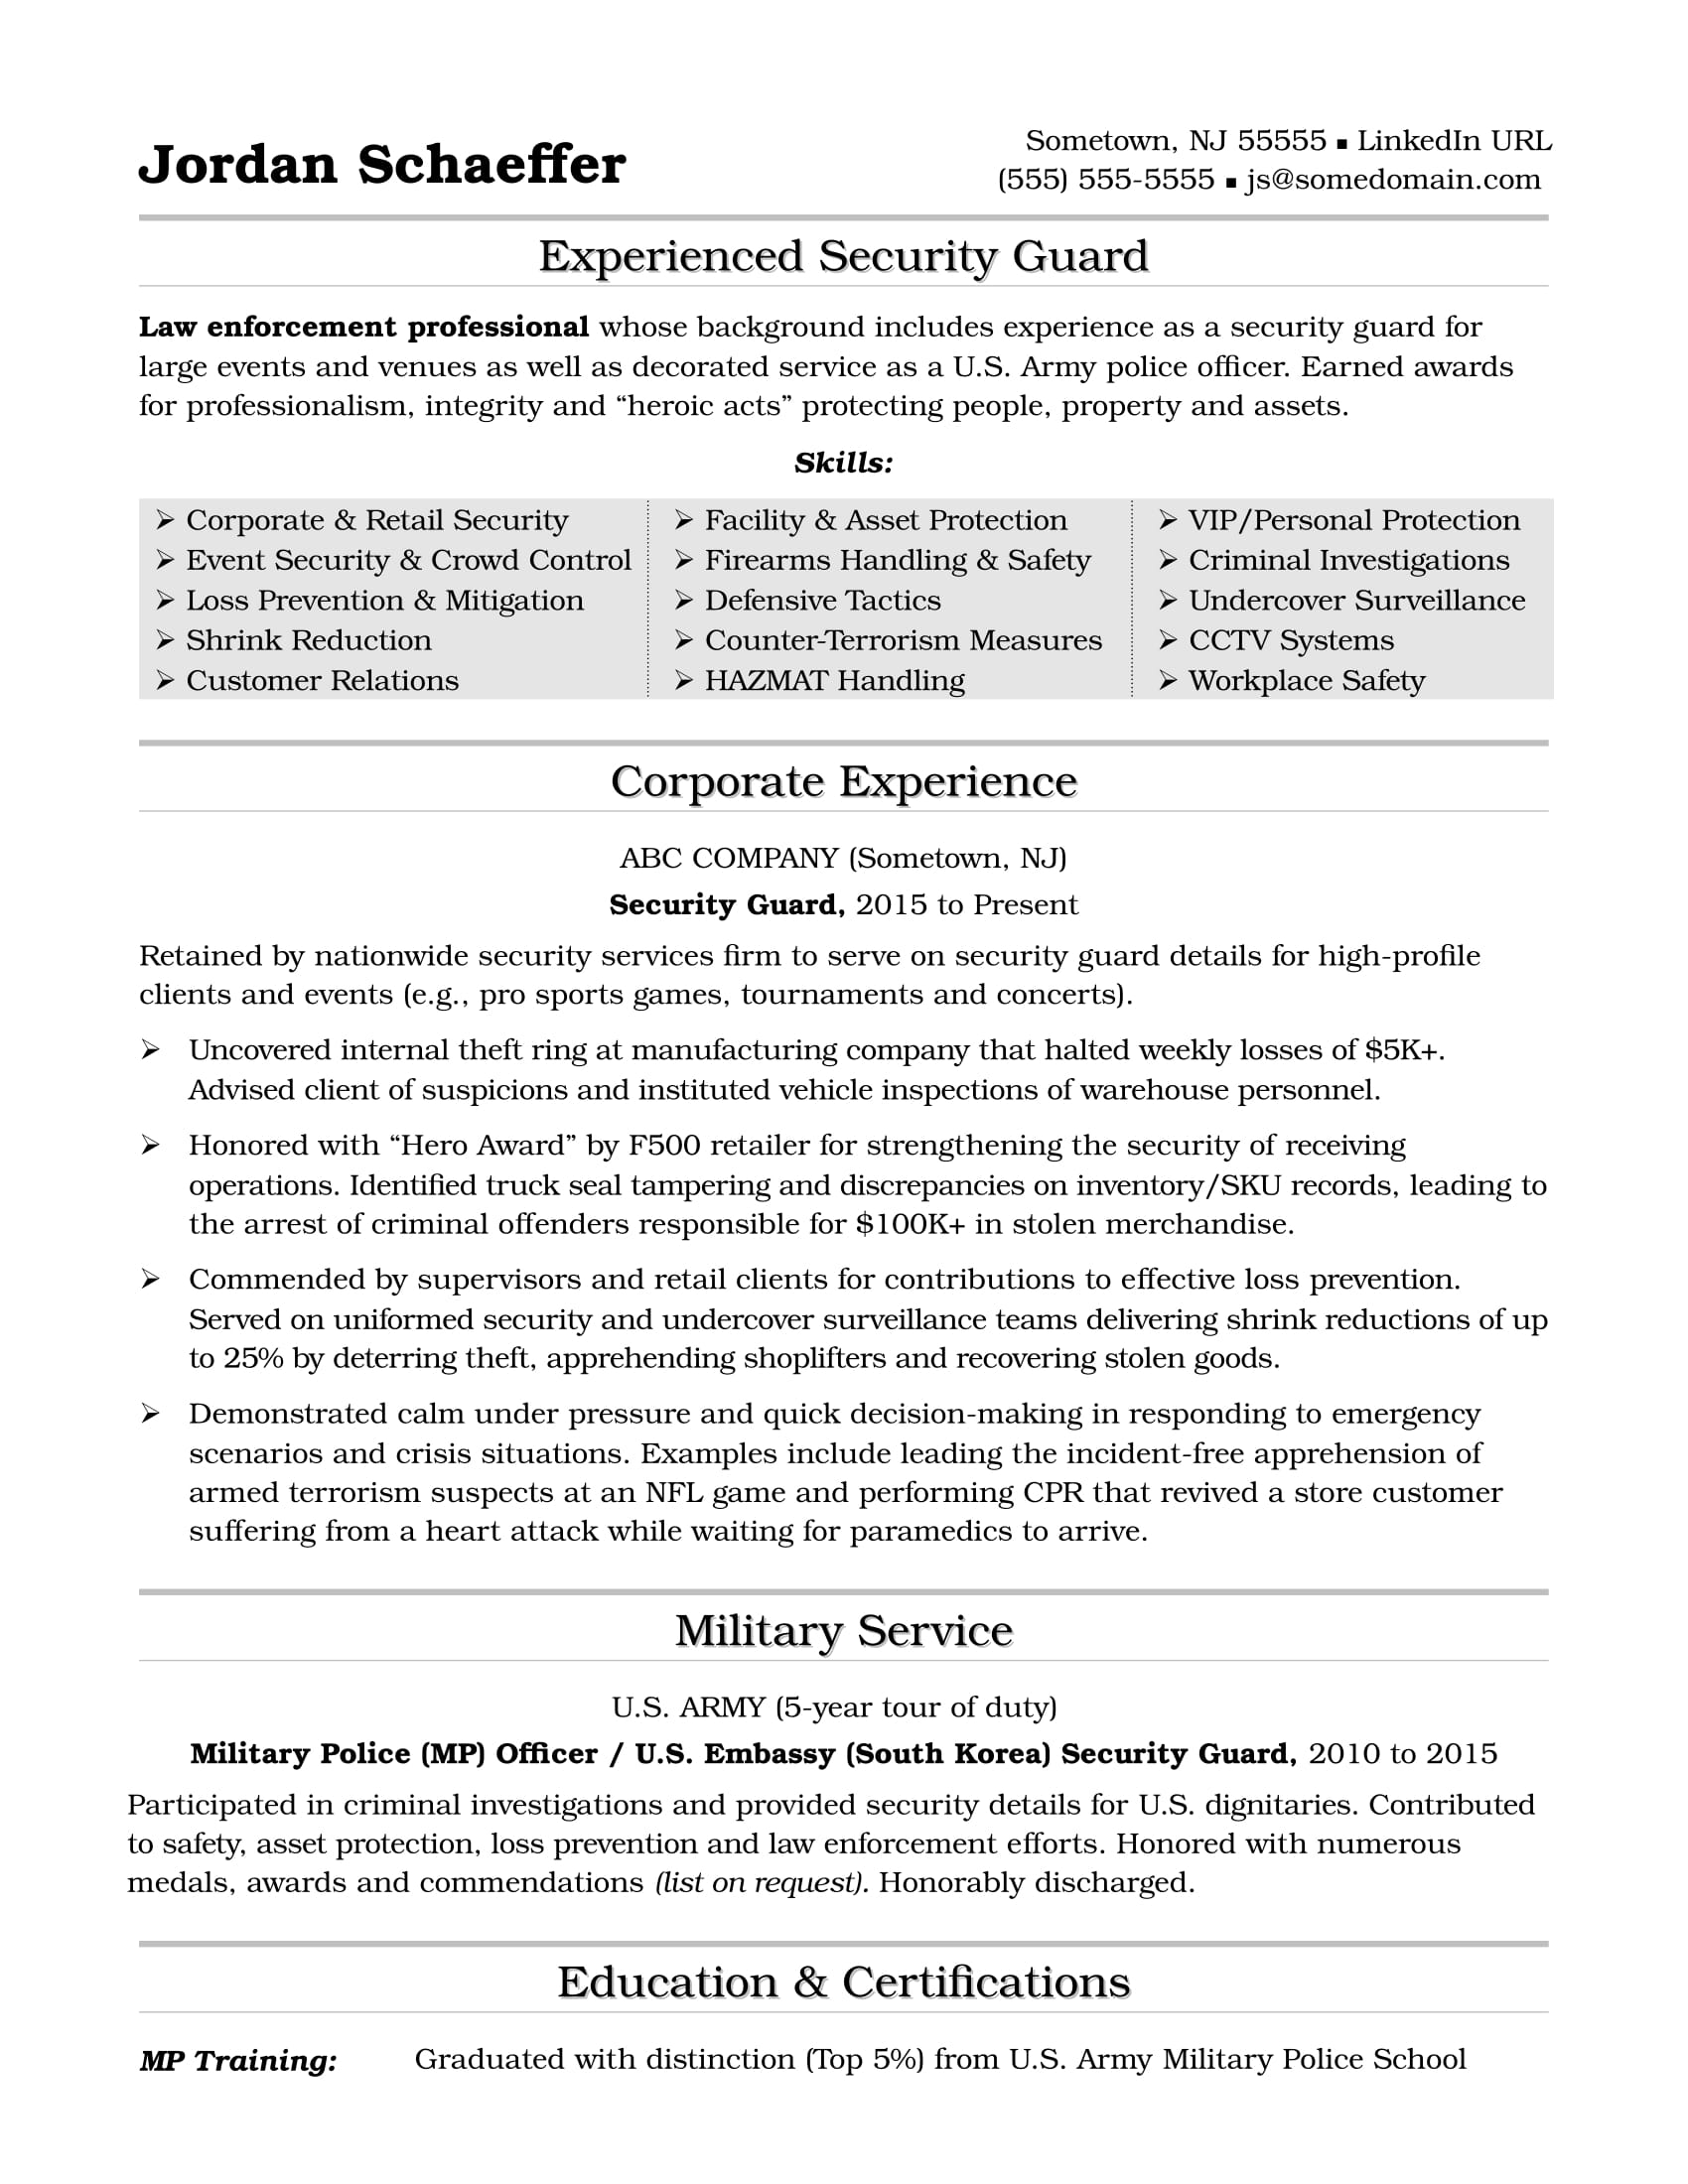 Attractive Security Guard Resume Sample